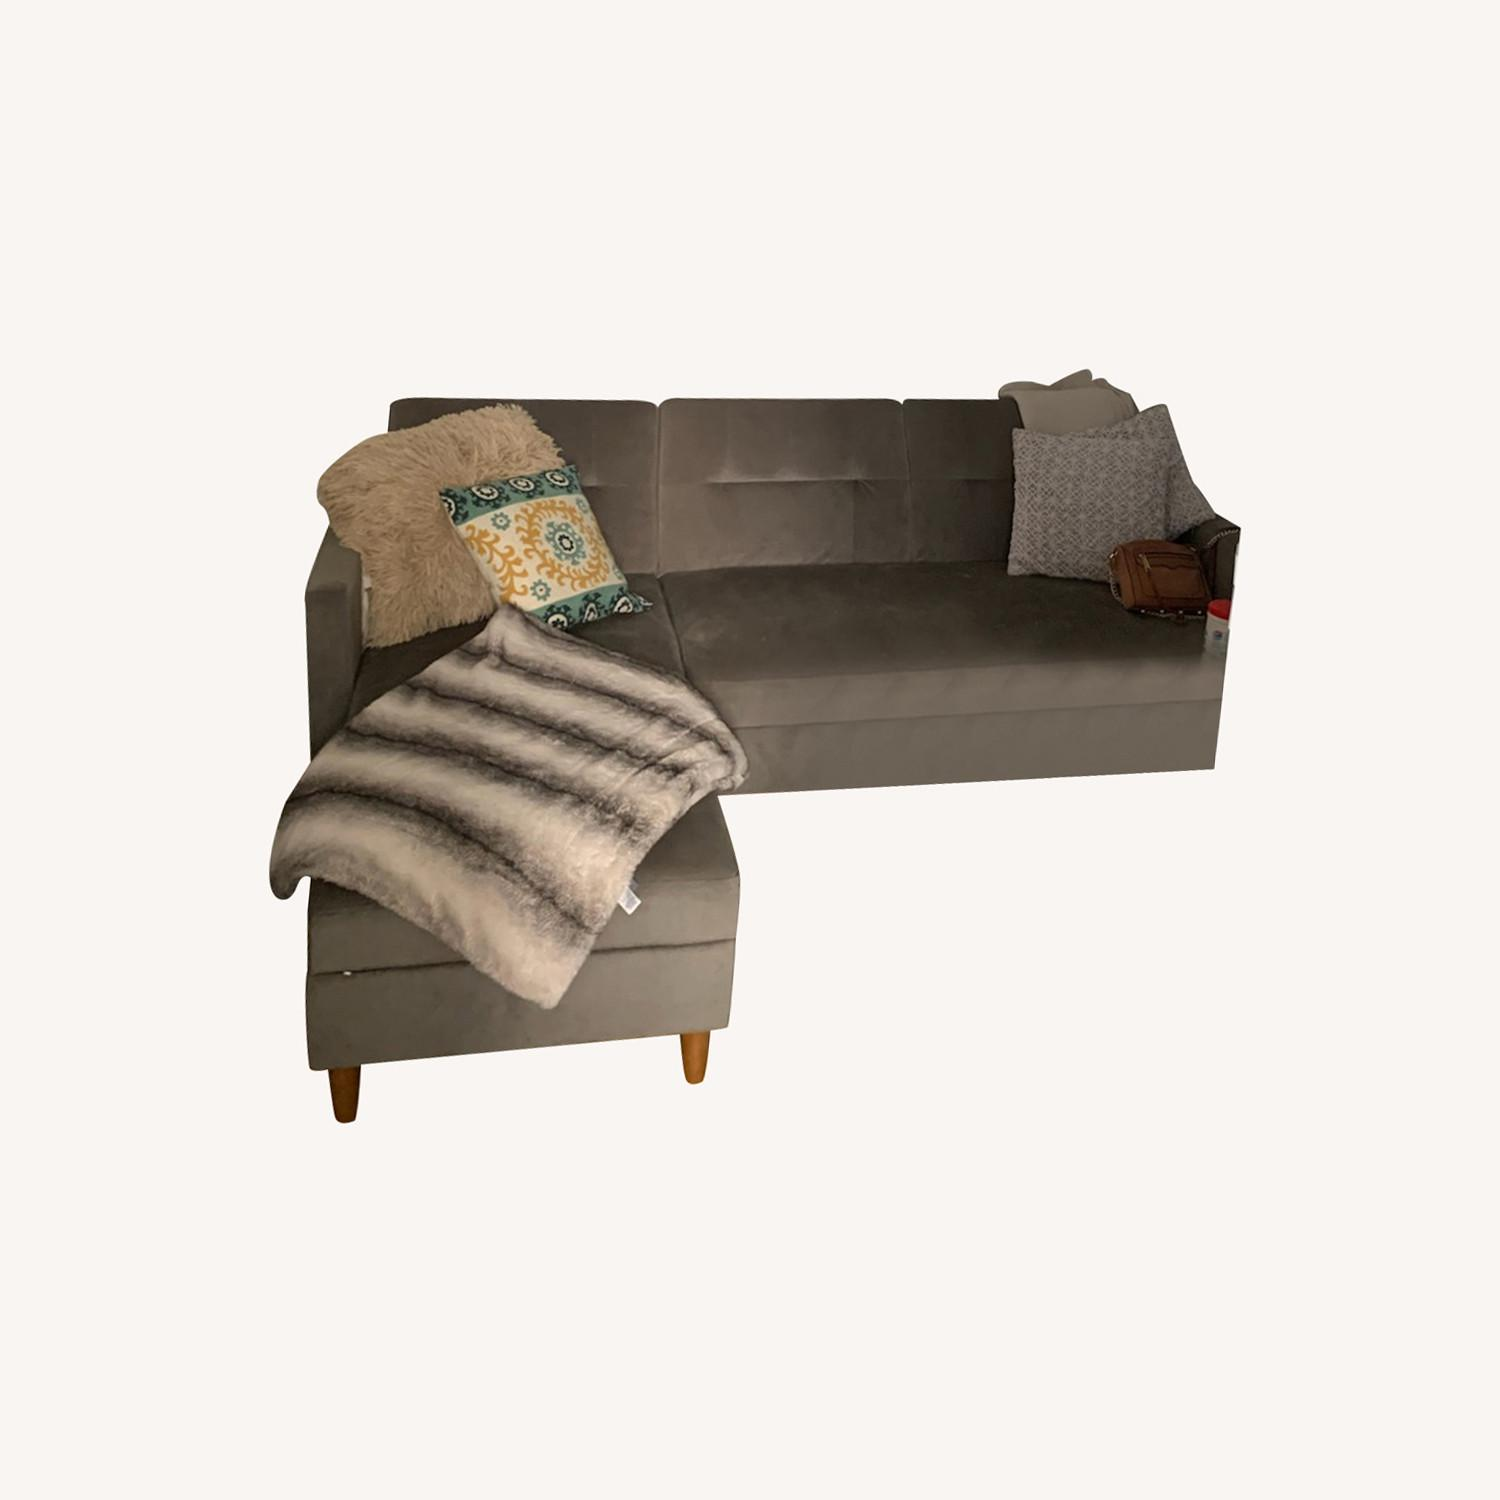 Wayfair Haskell Sofa & Chaise Sectional - image-4